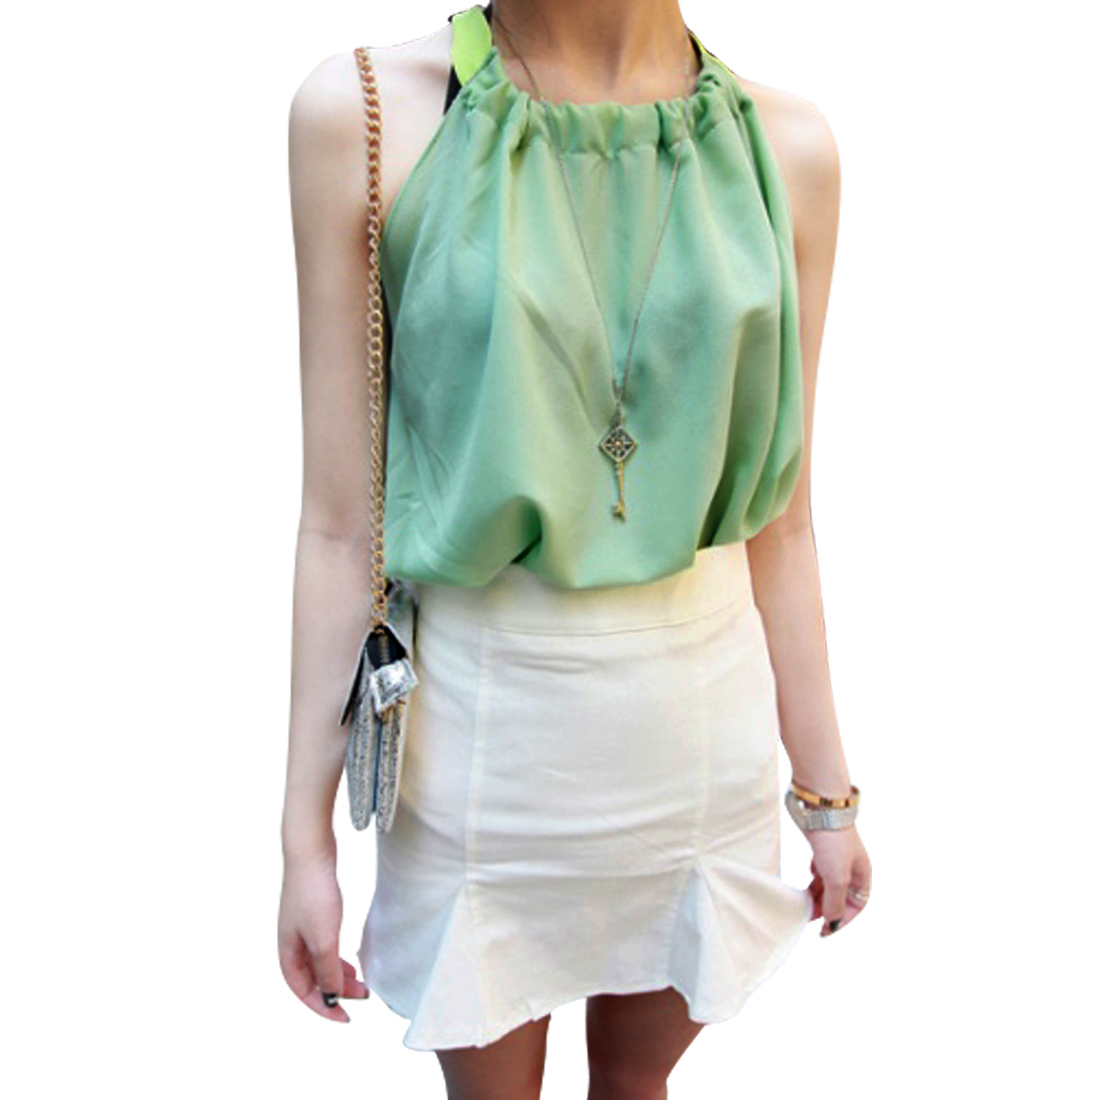 Lady Sleeveless Chiffon Pure Mint Green Self Tie Blouse XS